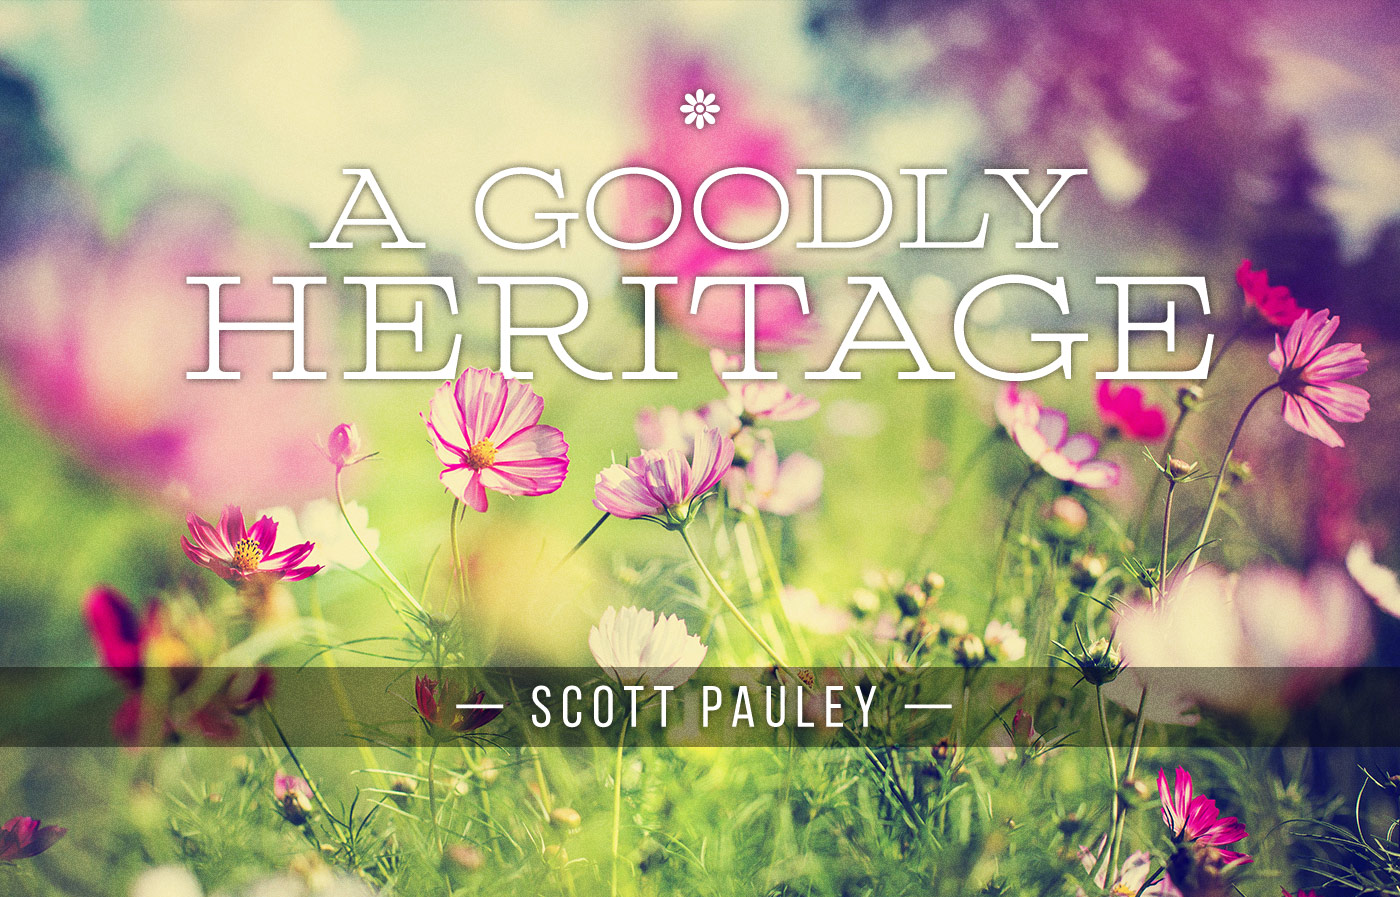 A Goodly Heritage - An article by Scott Pauley